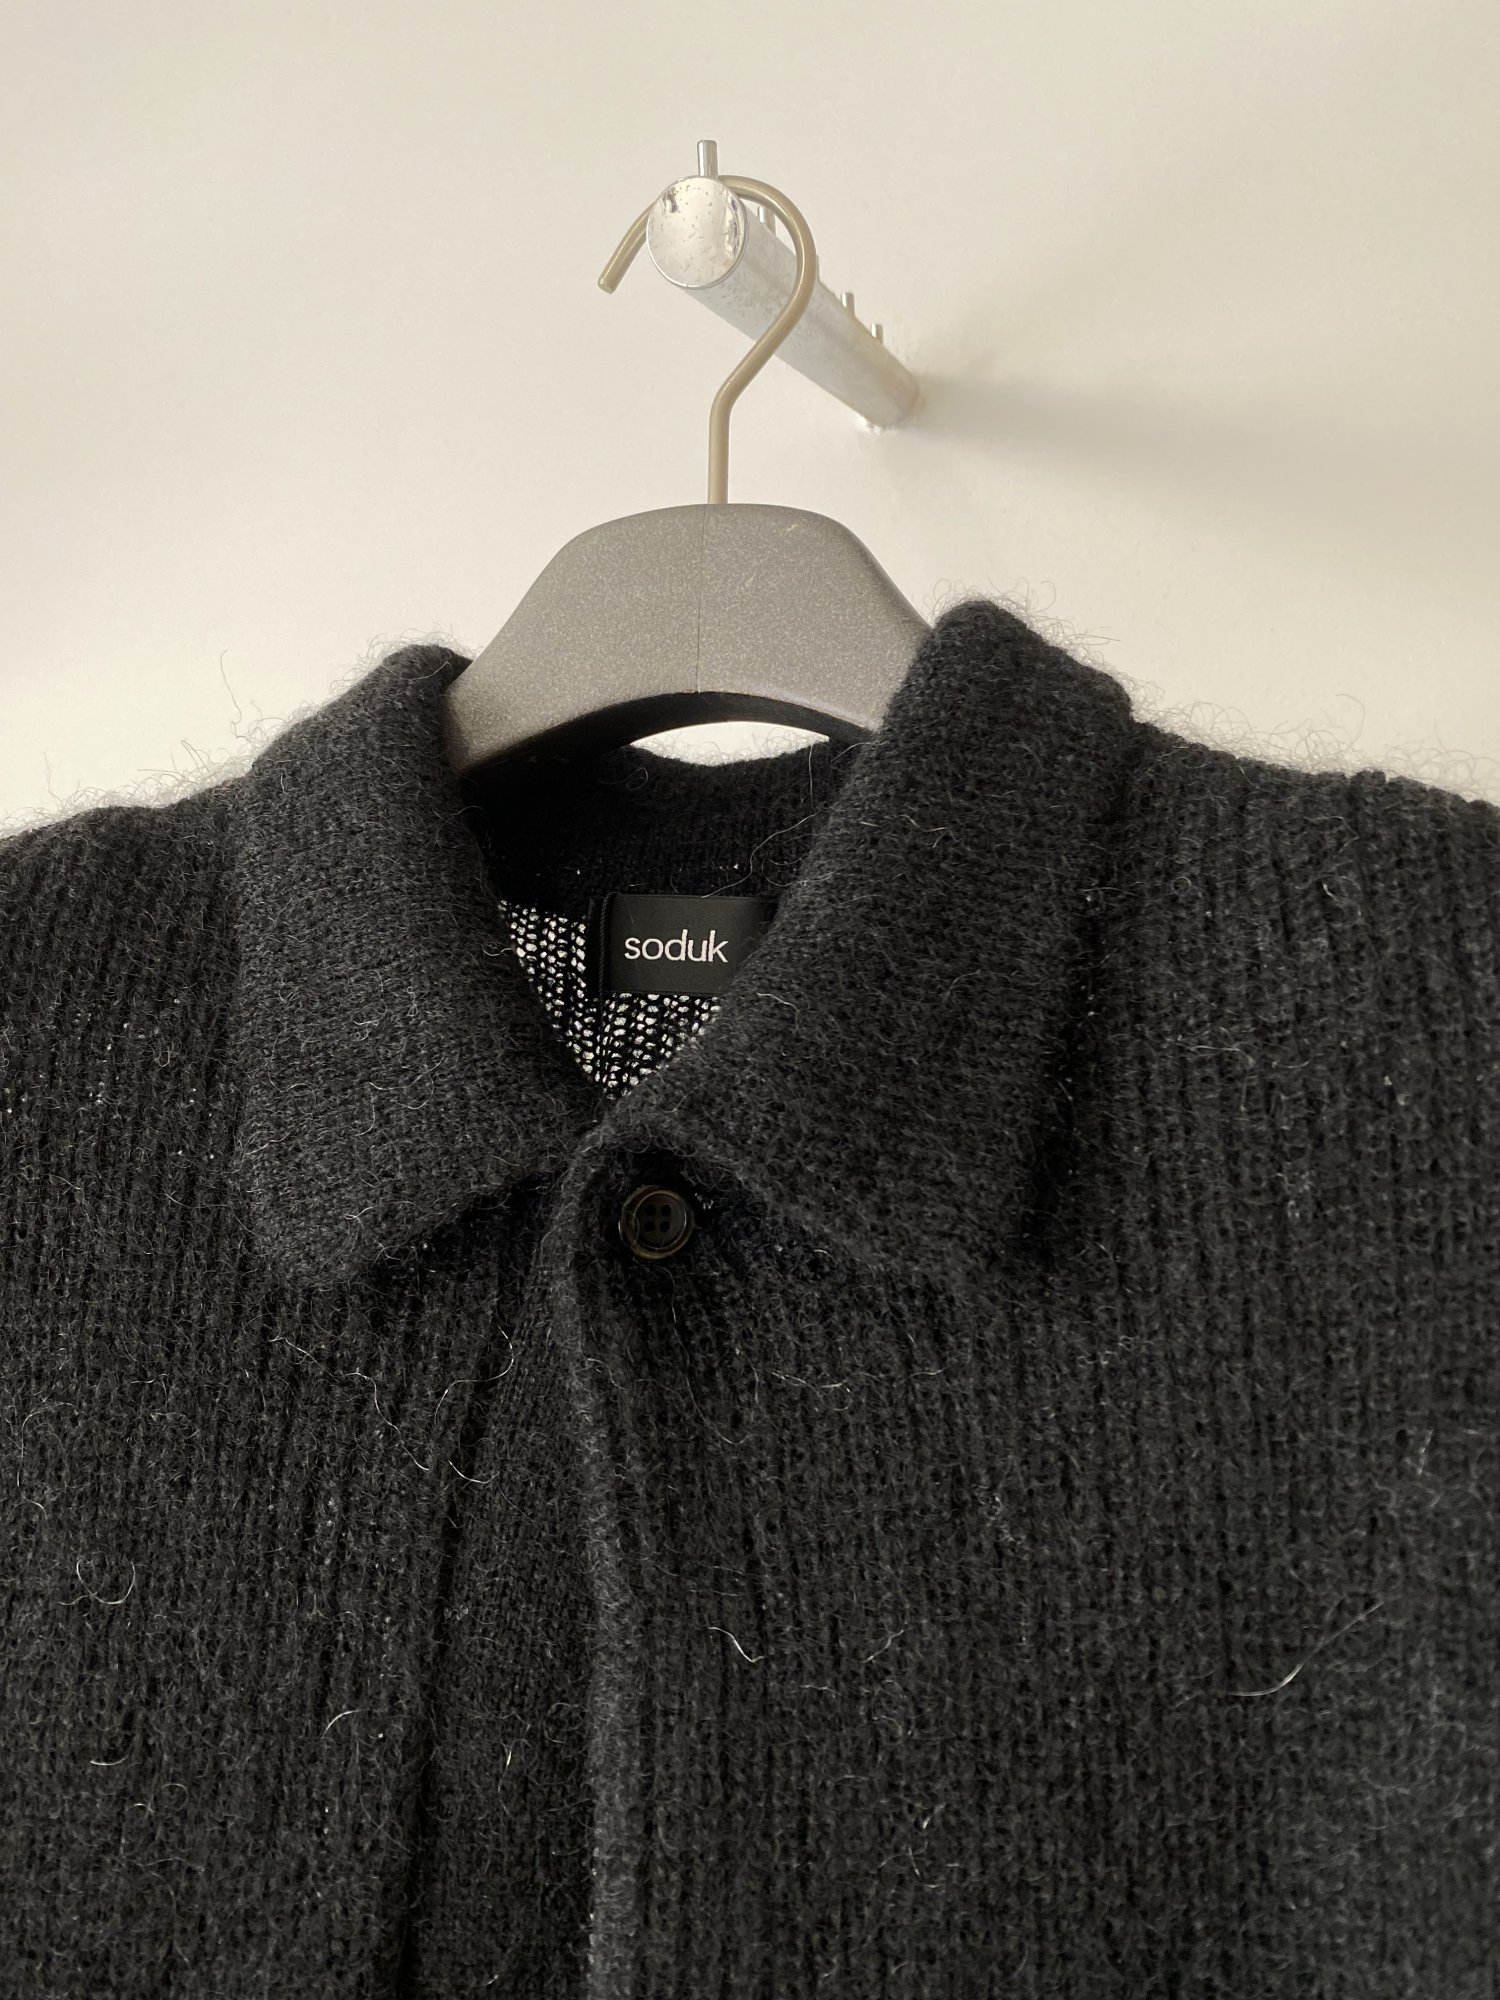 soduk<br />drawing knit / black<img class='new_mark_img2' src='https://img.shop-pro.jp/img/new/icons14.gif' style='border:none;display:inline;margin:0px;padding:0px;width:auto;' />